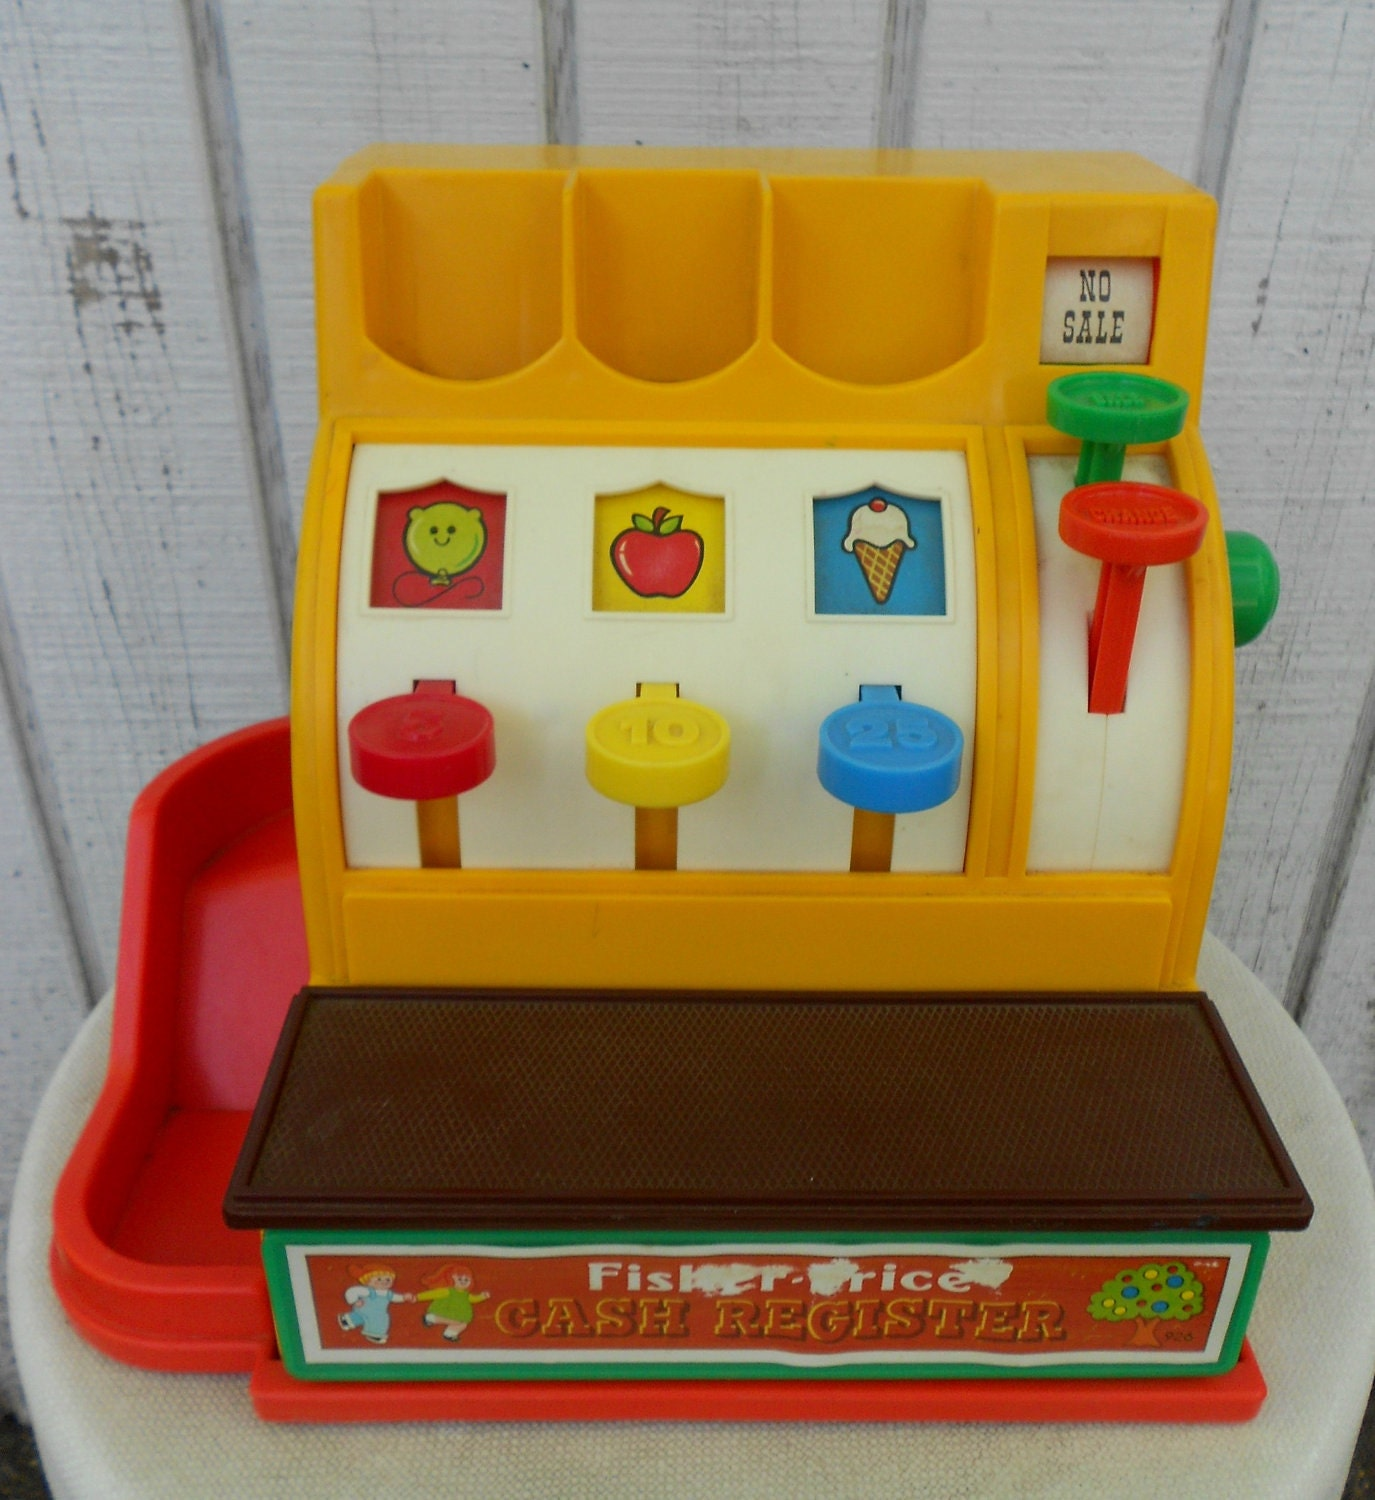 vintage fisher price cash register 70s toy child cashier. Black Bedroom Furniture Sets. Home Design Ideas